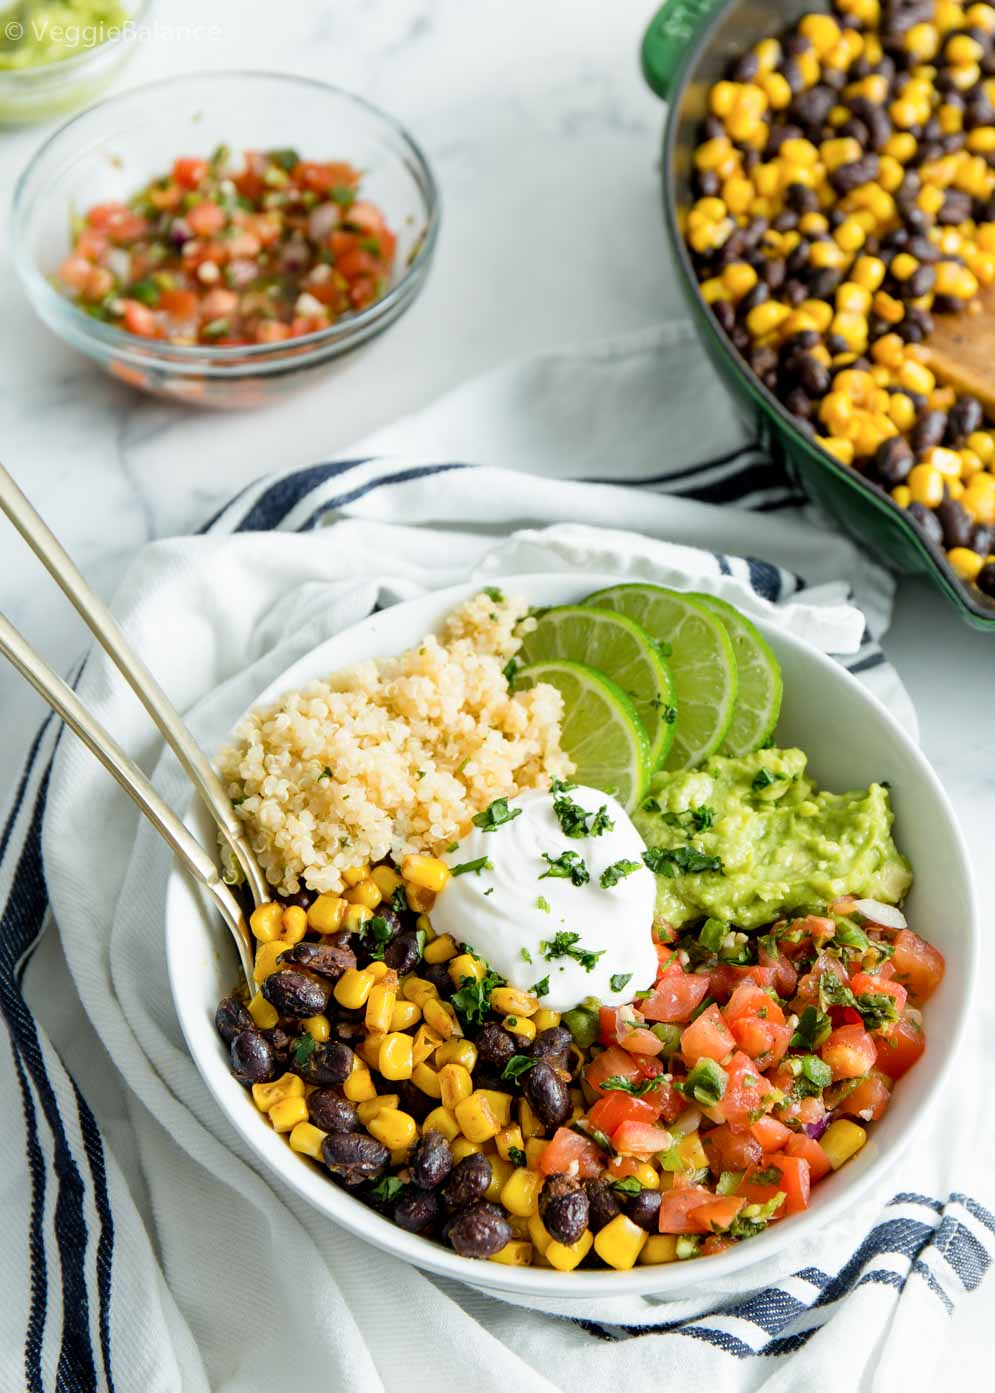 Easy Vegan Burrito Bowl built and with leftover pico de gallo and black bean mixture for extra meals